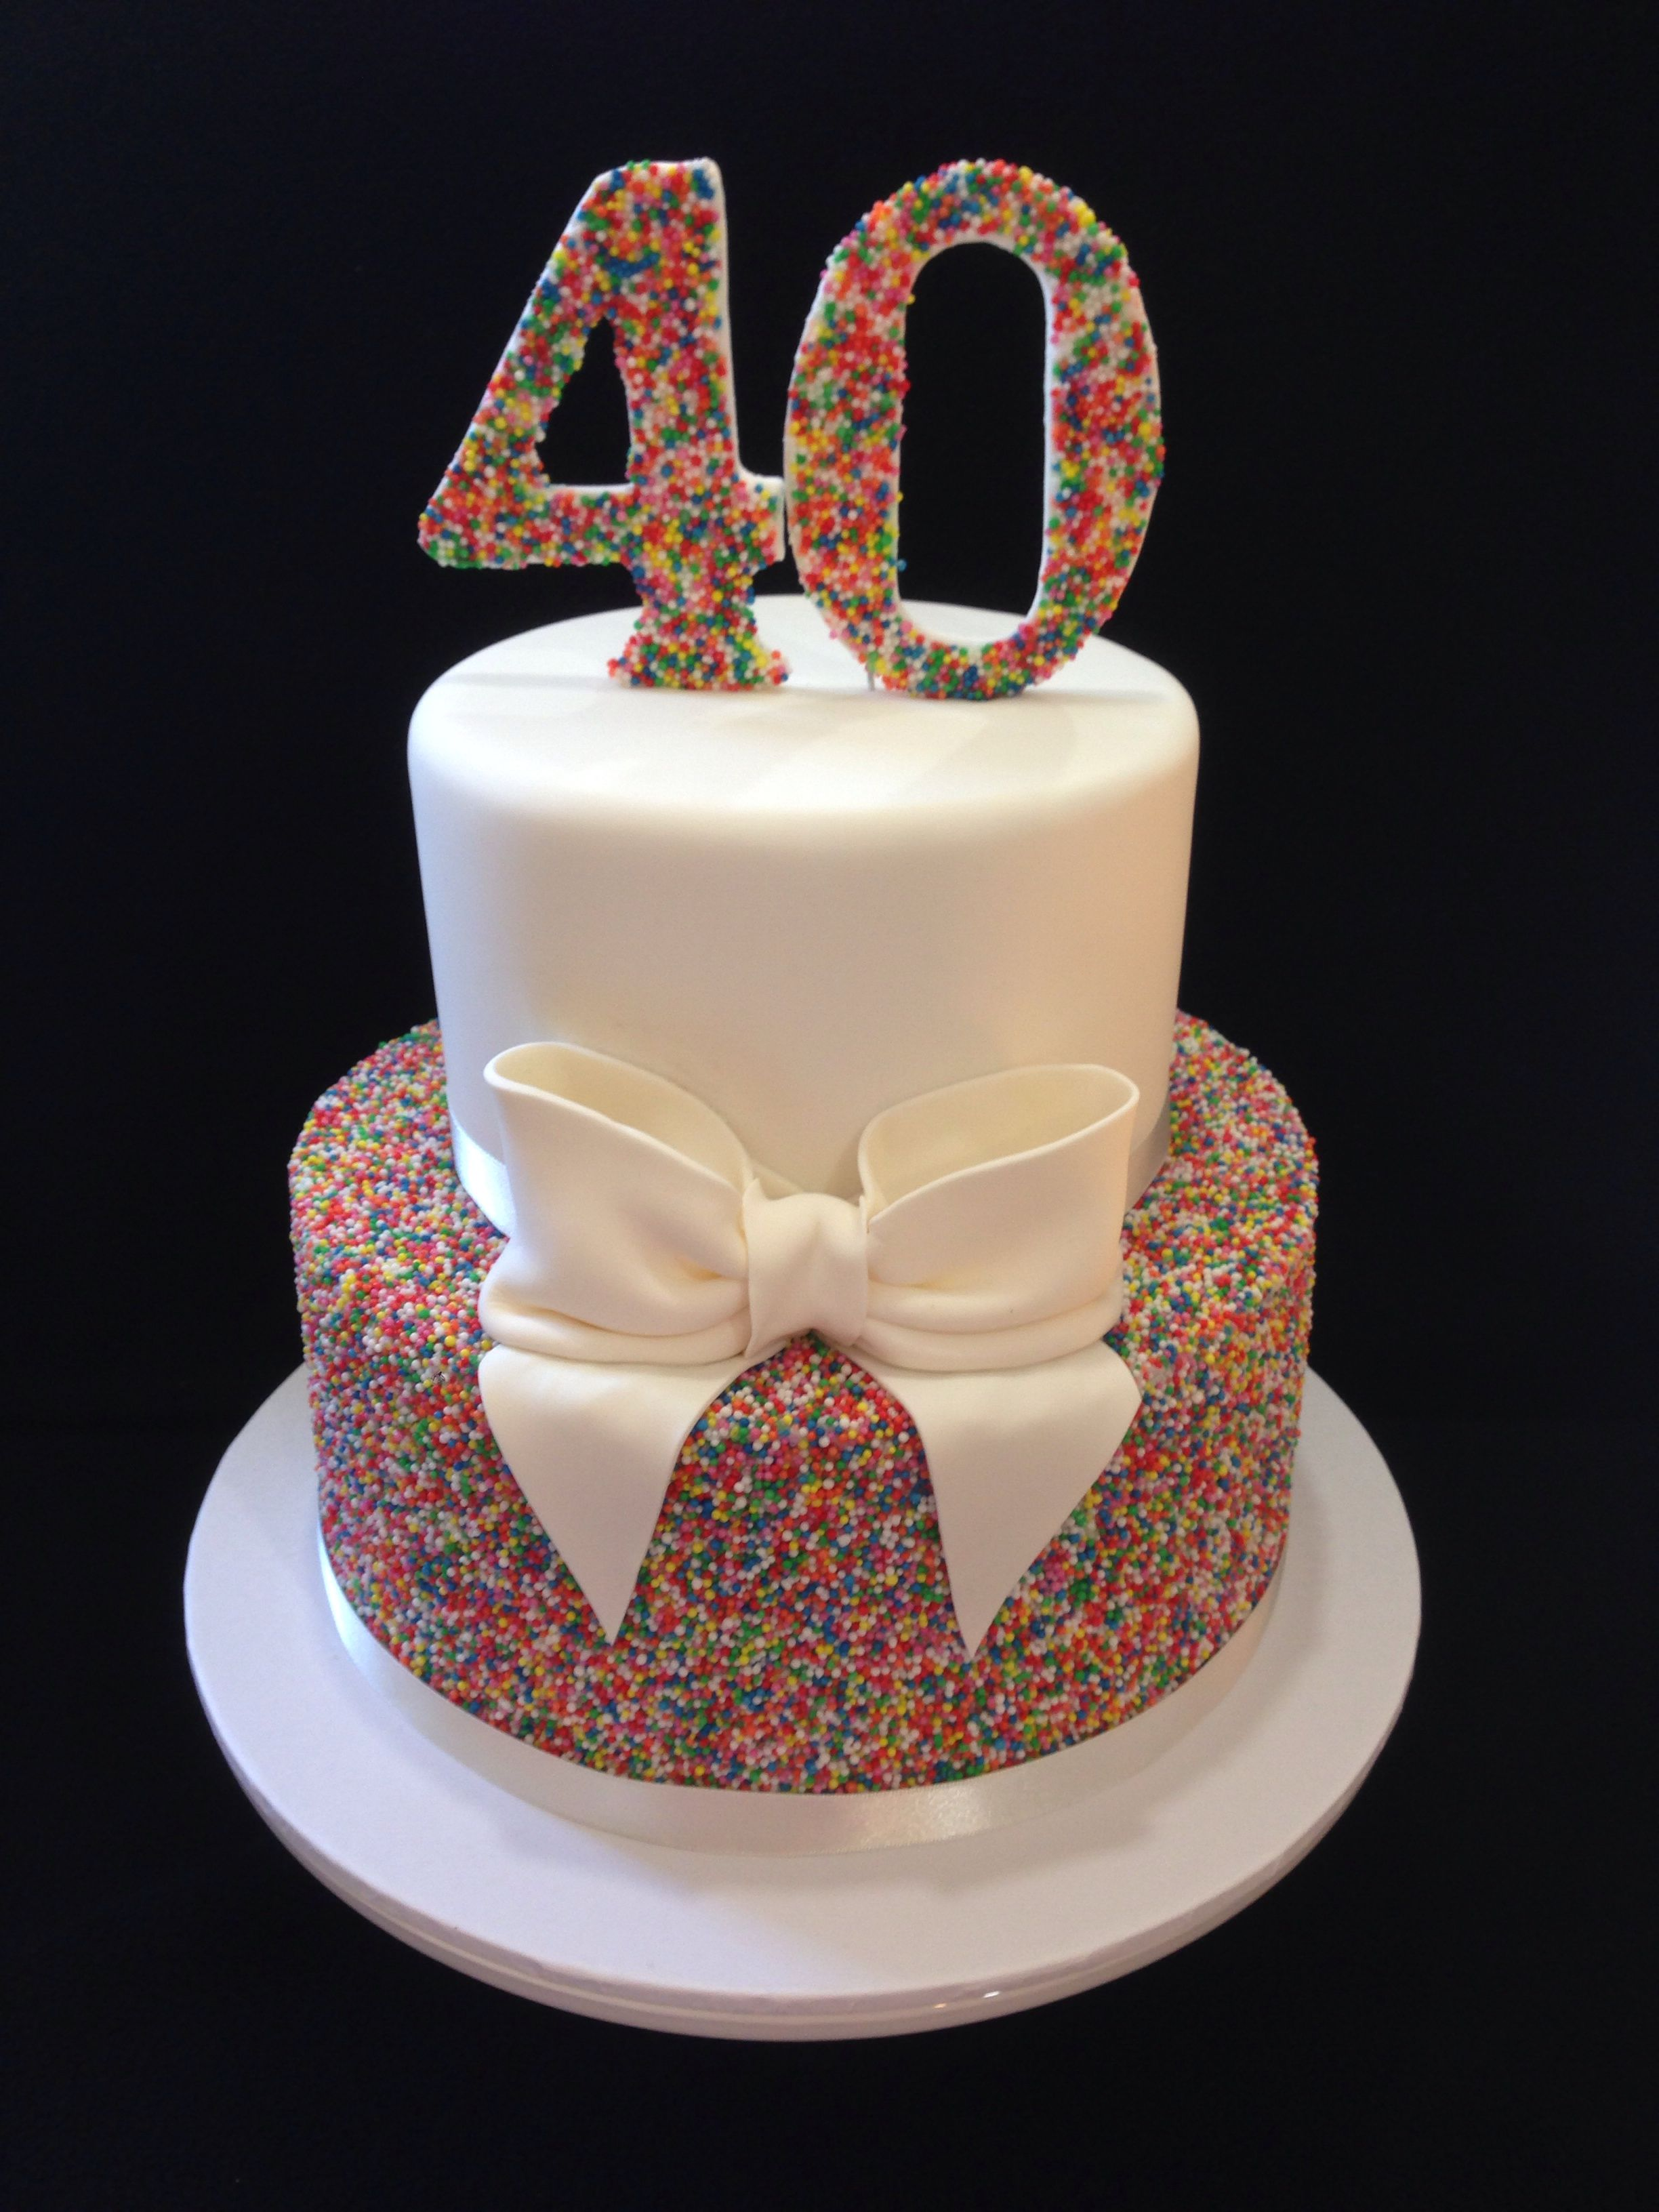 40th Birthday Cake 100s 1000s Love This Look Hundreds And